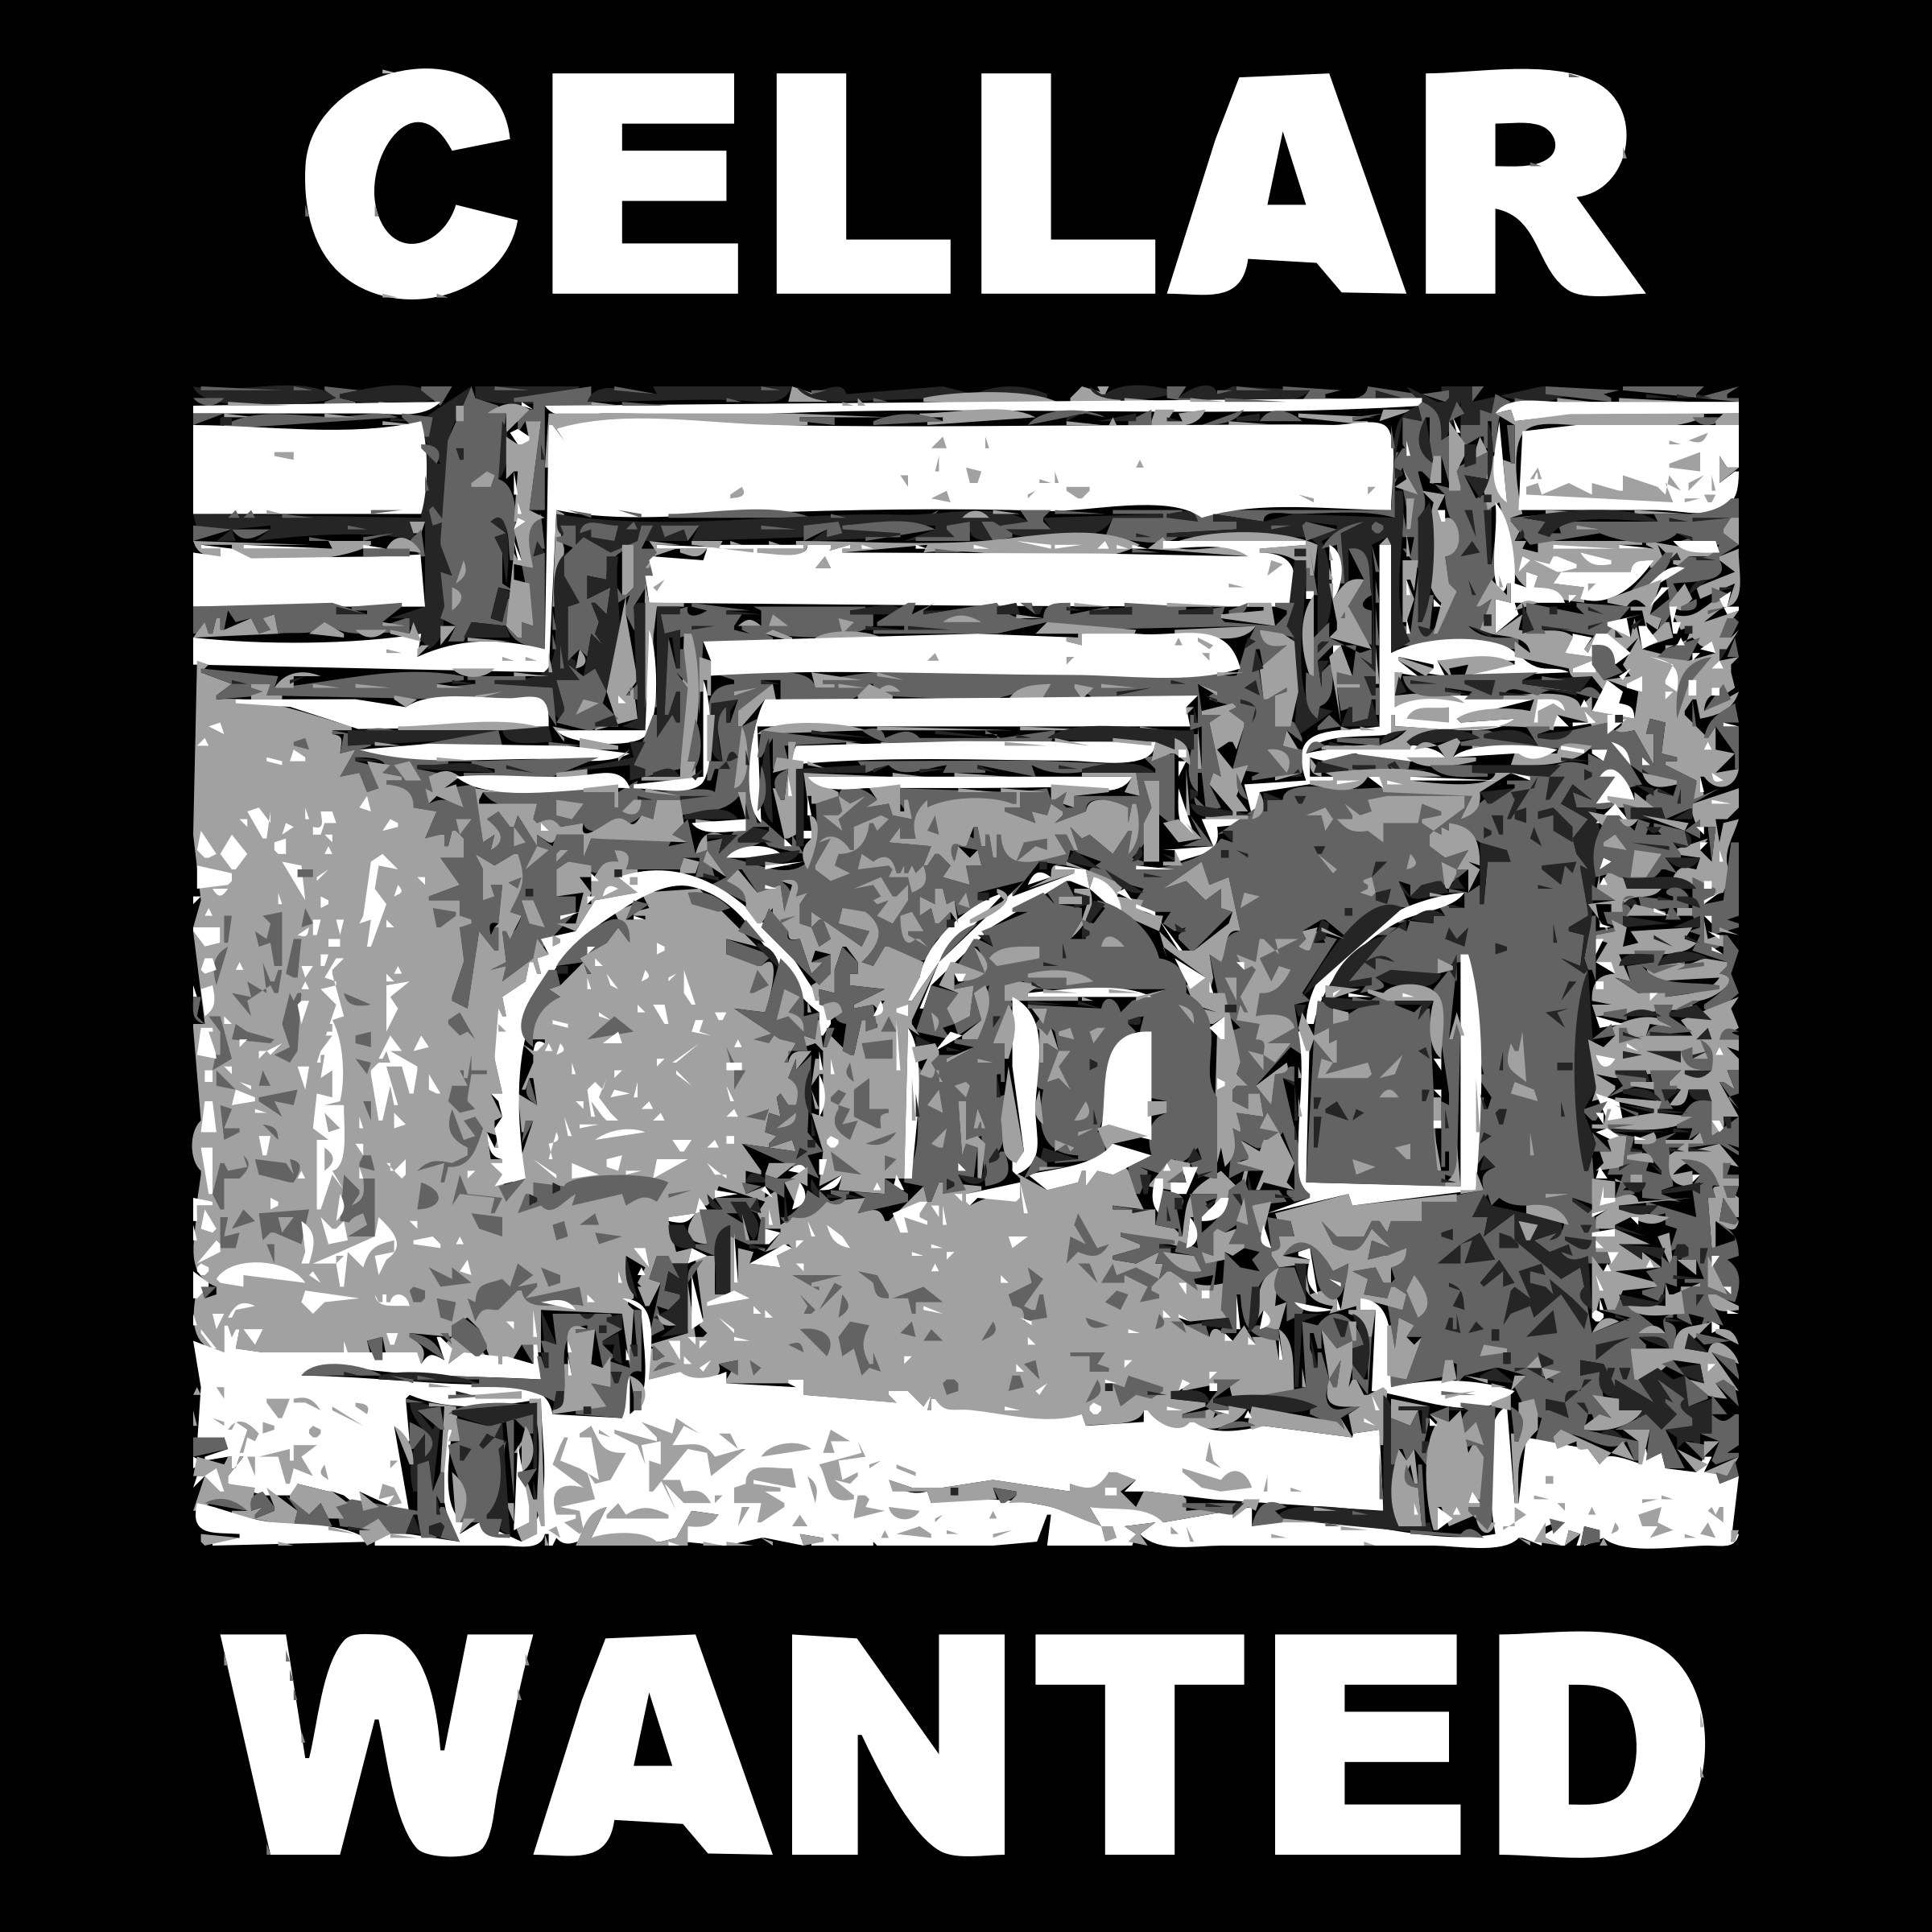 [request] Scenery 5 - CELLAR by speedstar